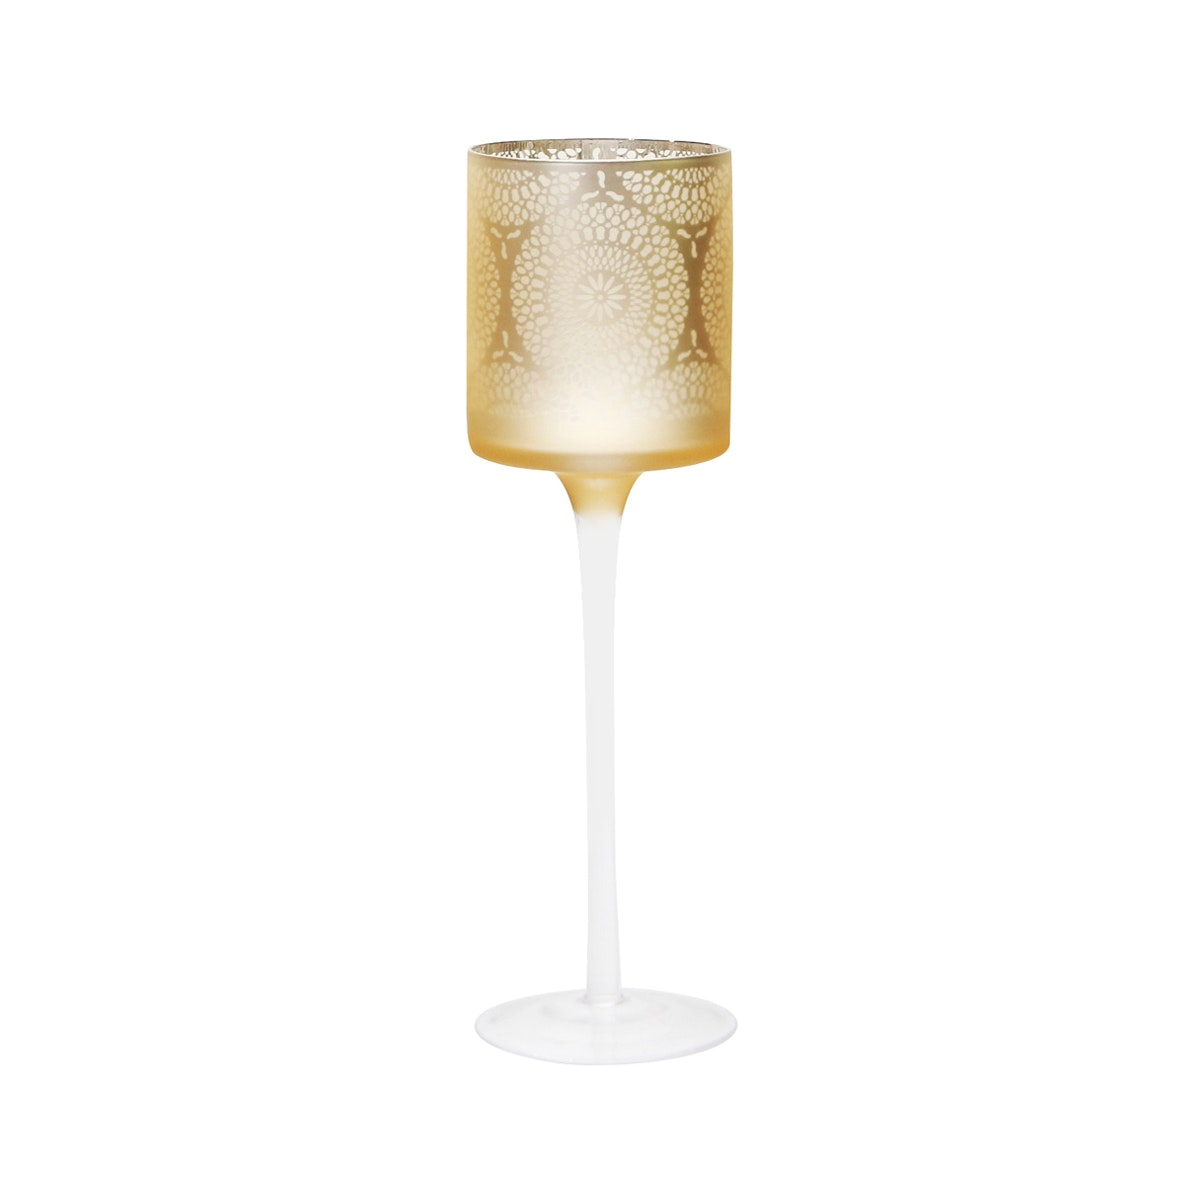 Vivere Hurricane Candle Holder Round Lace Gold 9x30 cm